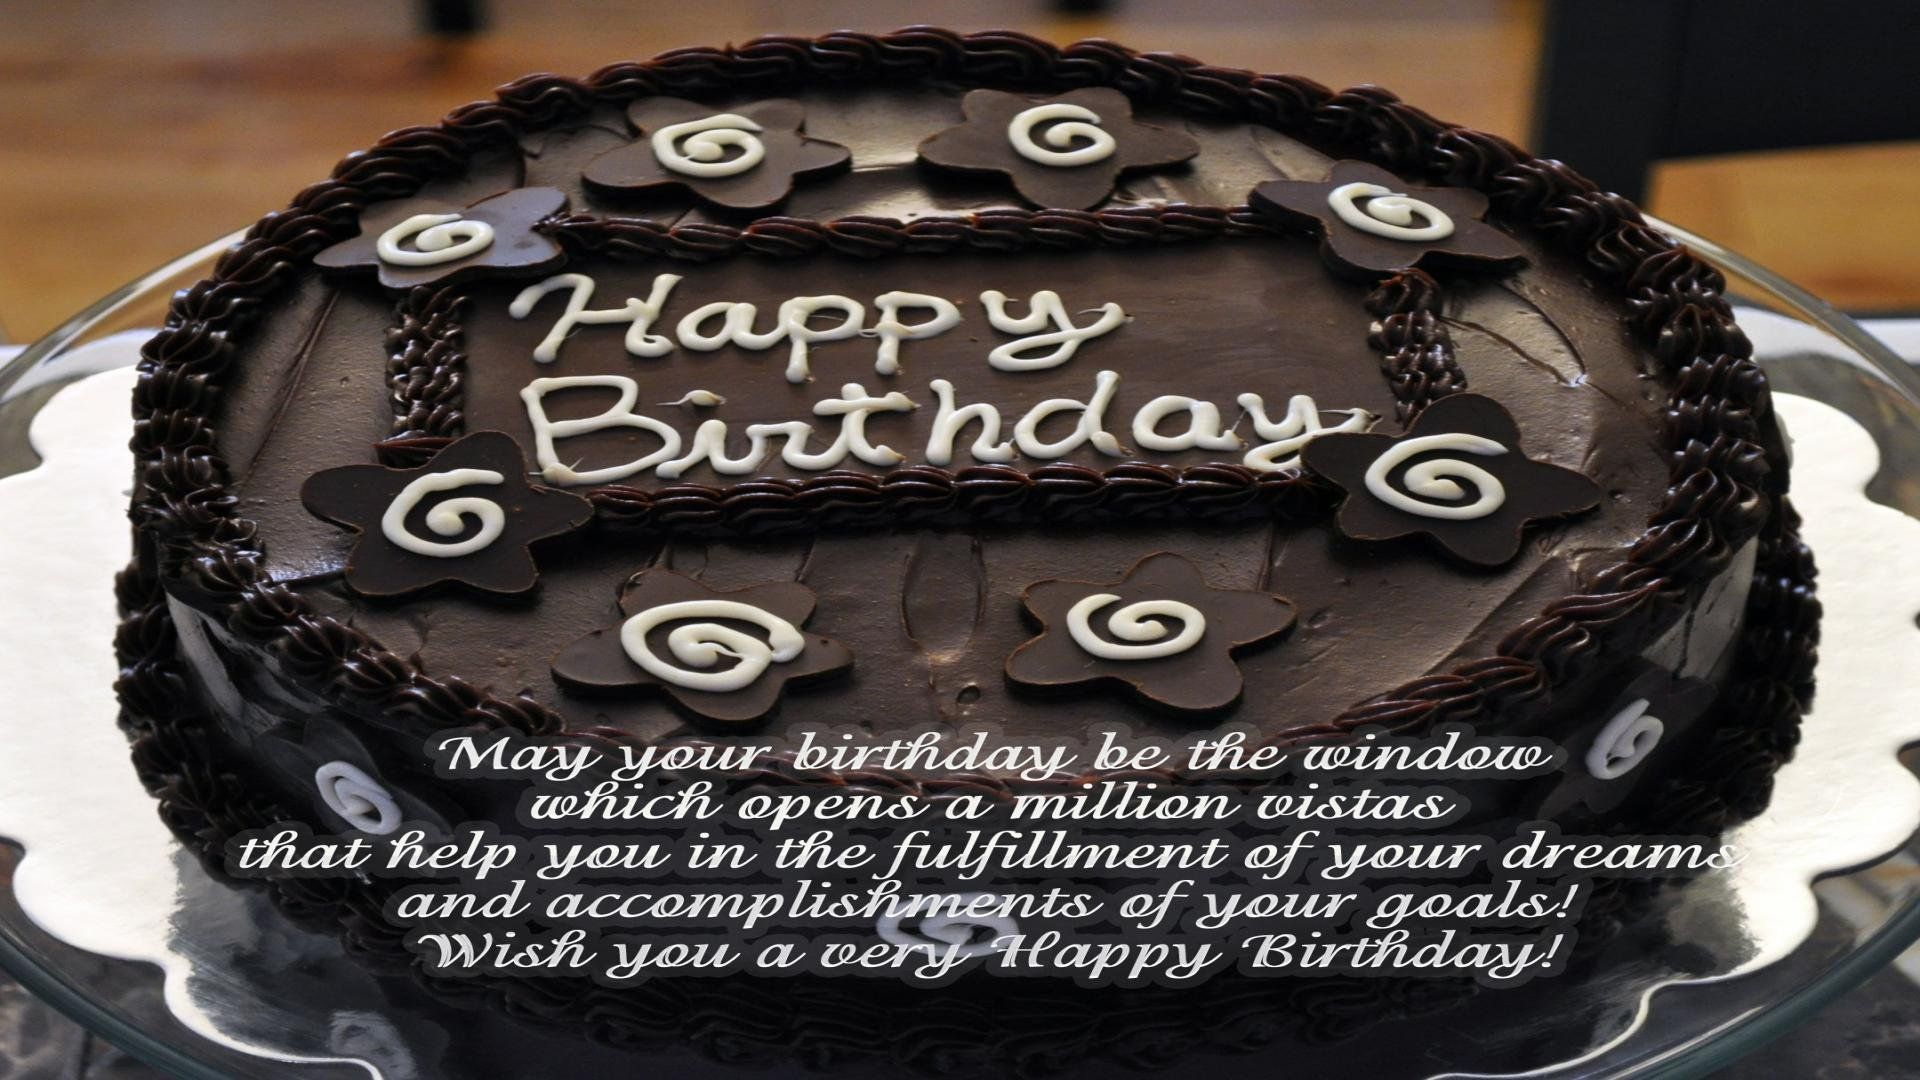 Happy Birthday Cake Pictures And Photos For Fb And Whatsapp Hd